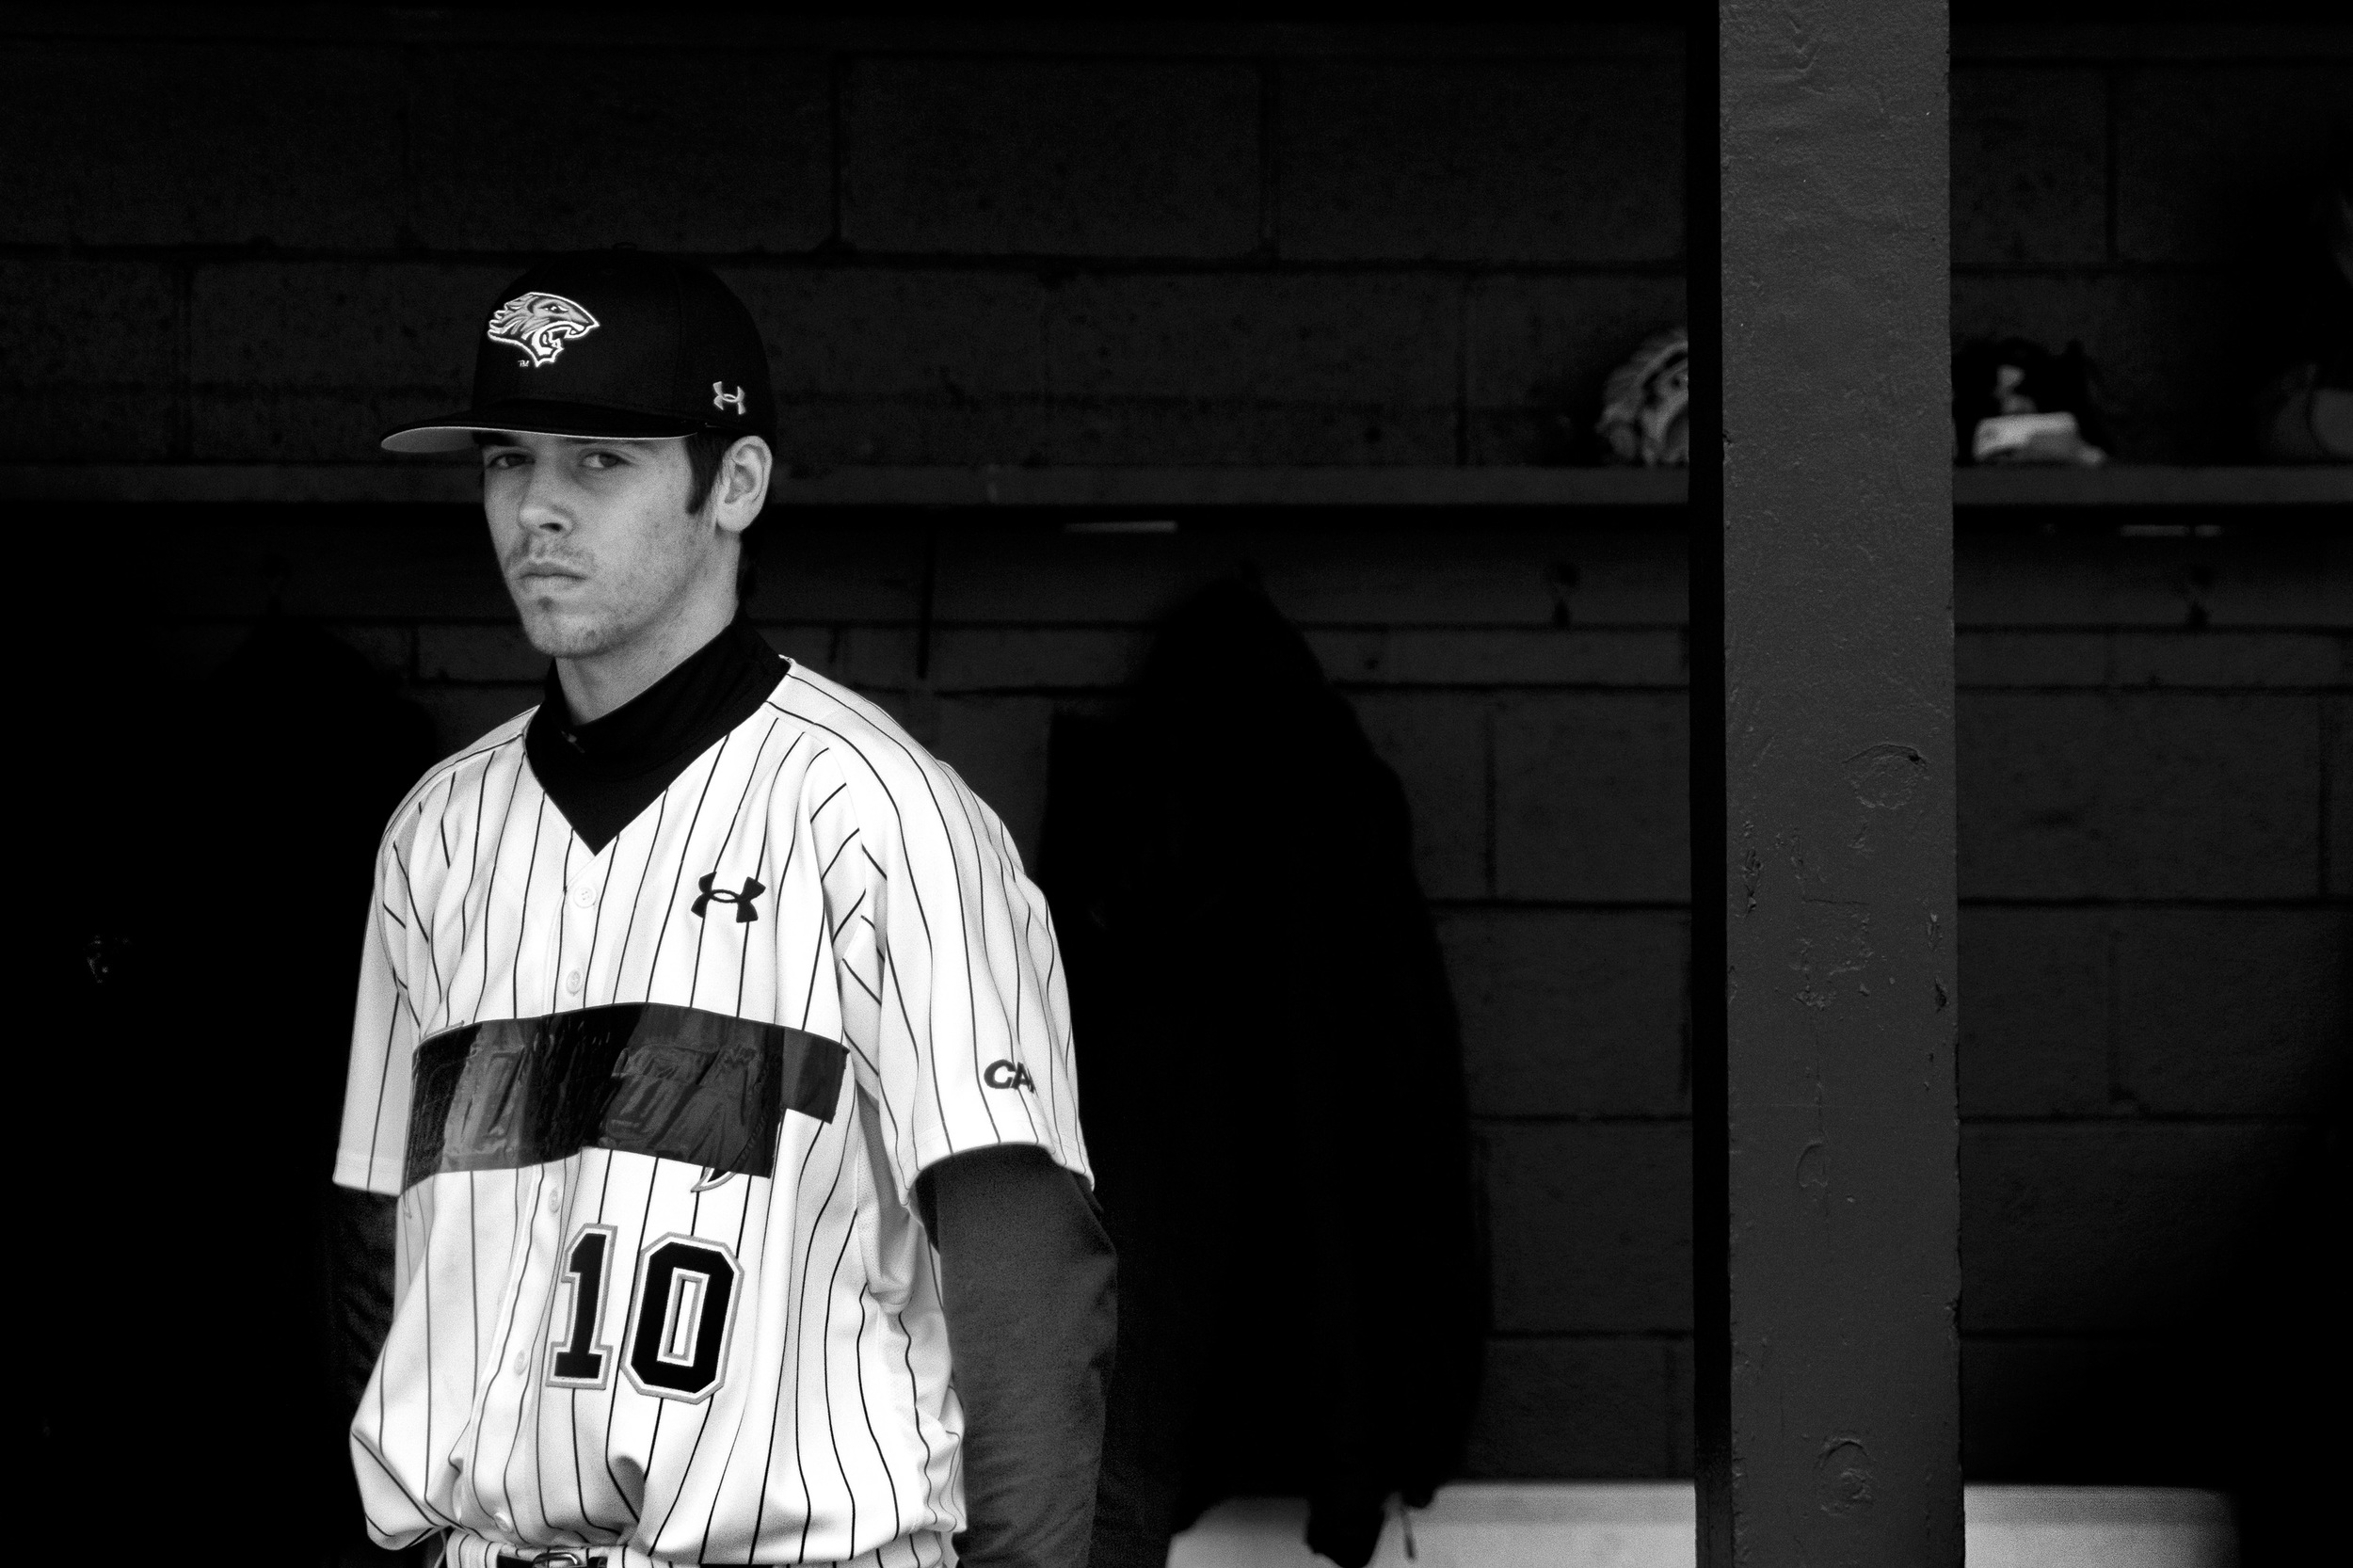 Towson University pitcher David Sapp makes eye contact with media members during a home game on March 8, 2013 in Baltimore, Md.